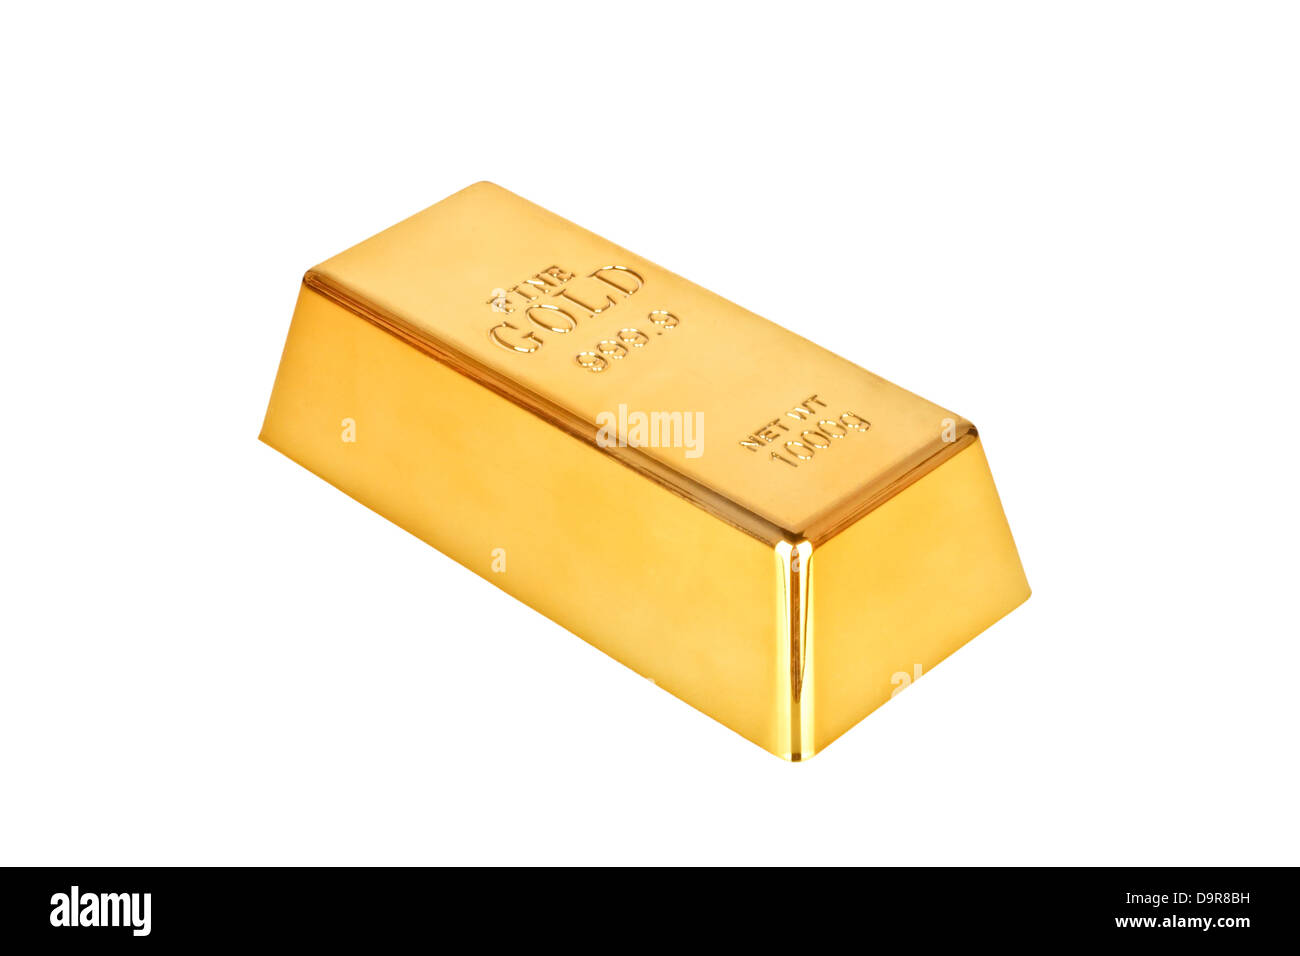 Gold bar on a white background - Stock Image